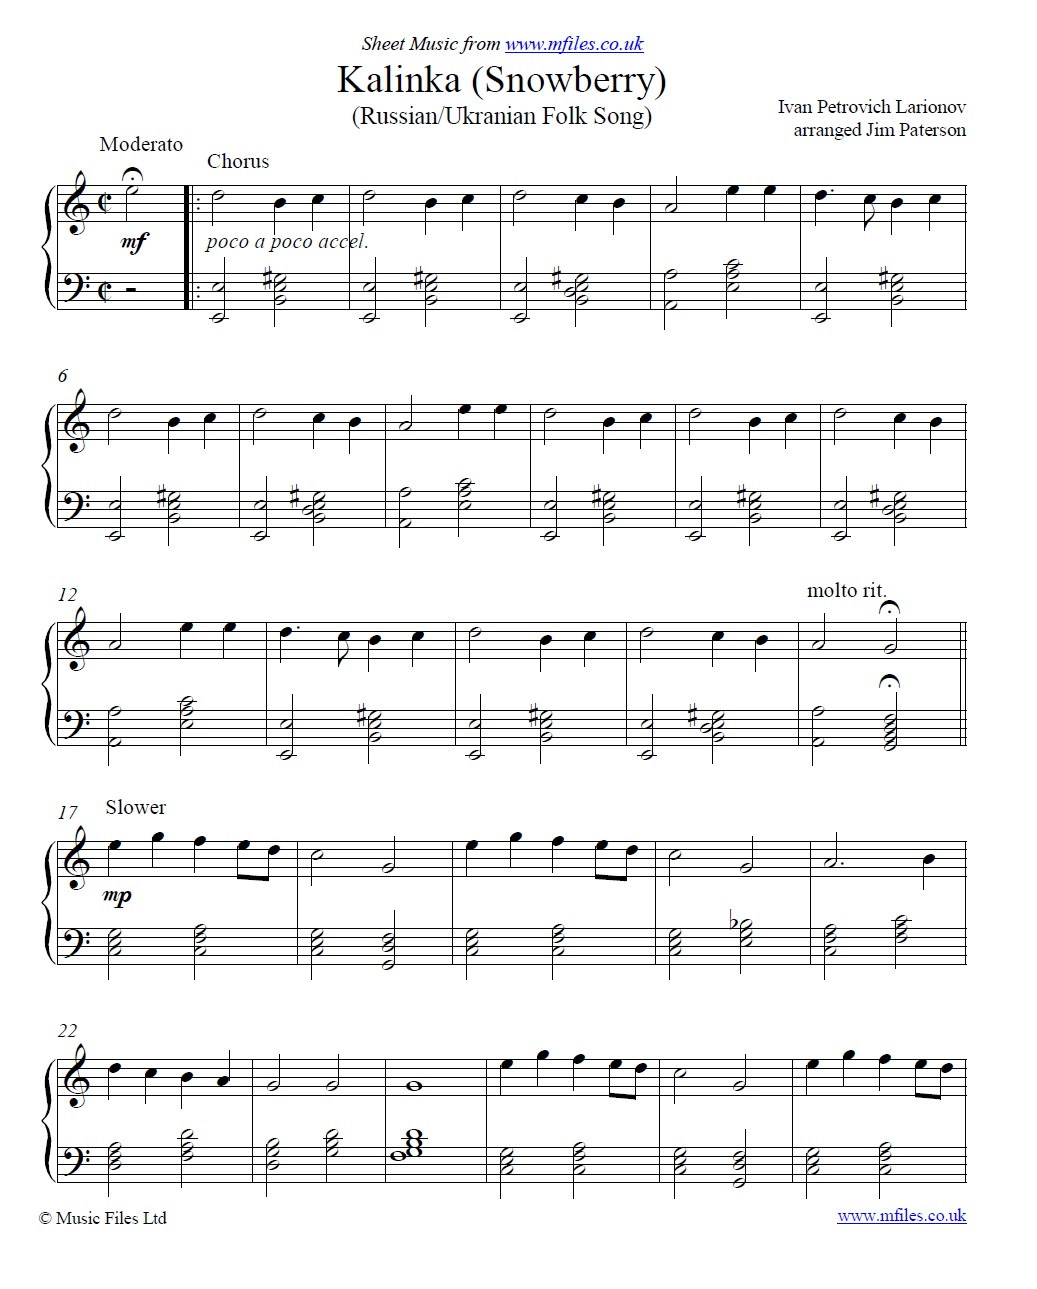 Kalinka Traditional Russian Folk Song By Ivan Petrovich Larionov Sheet Music Arranged For Piano By Jim Paterson